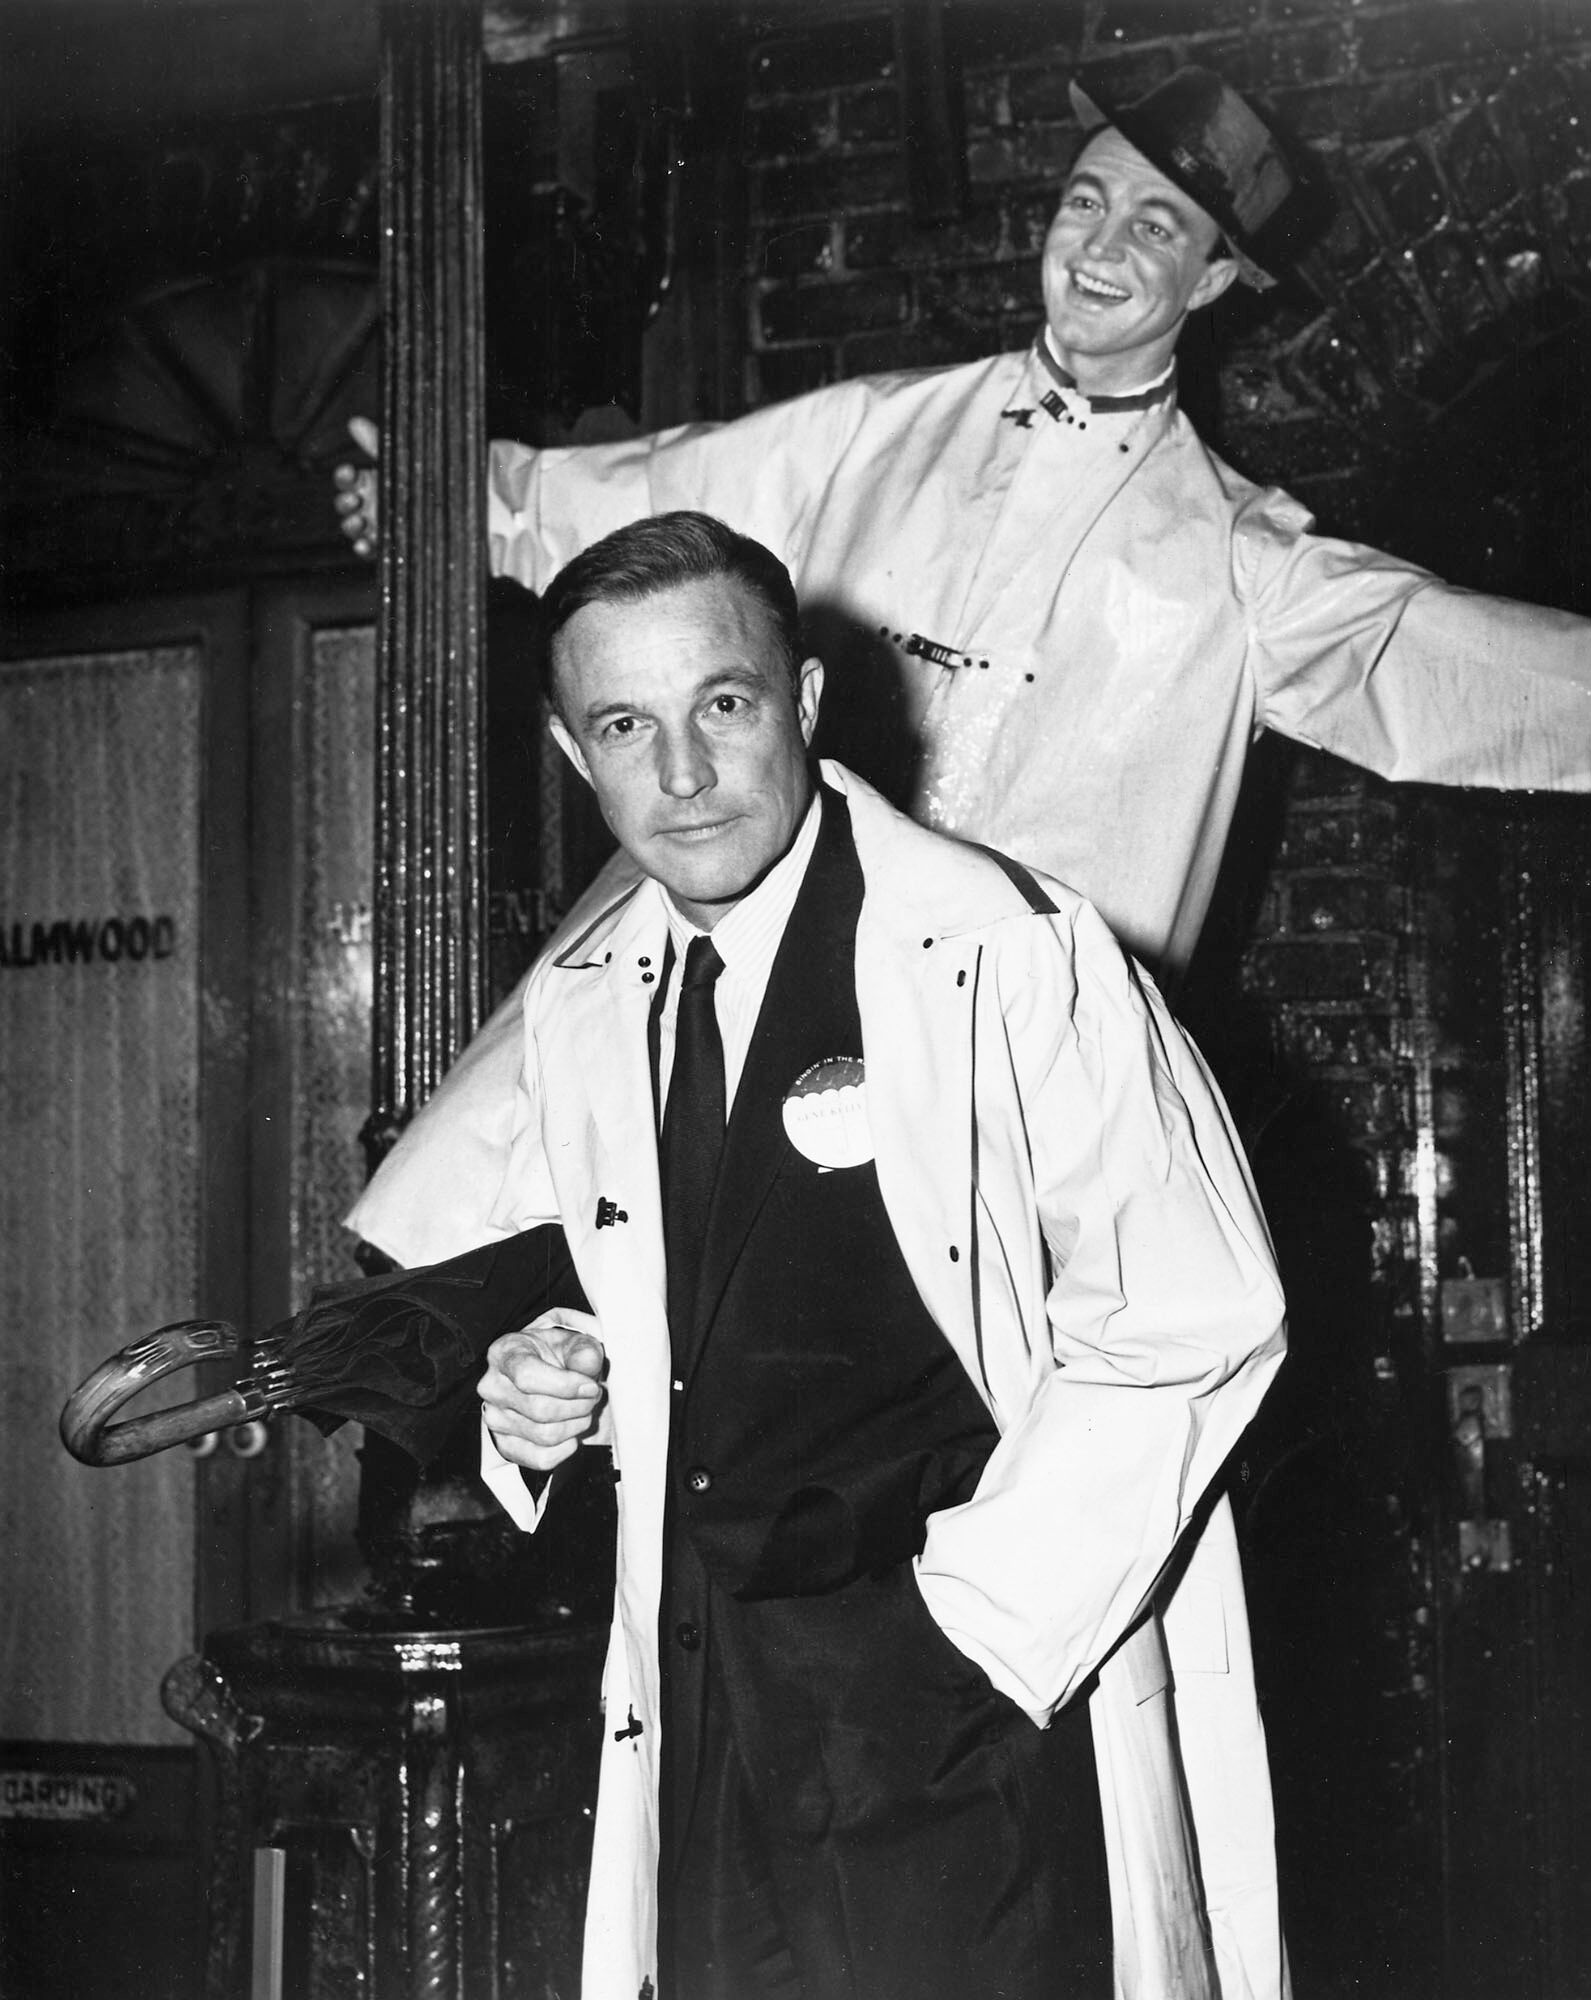 Gene Kelly in front of his most famous movie moment